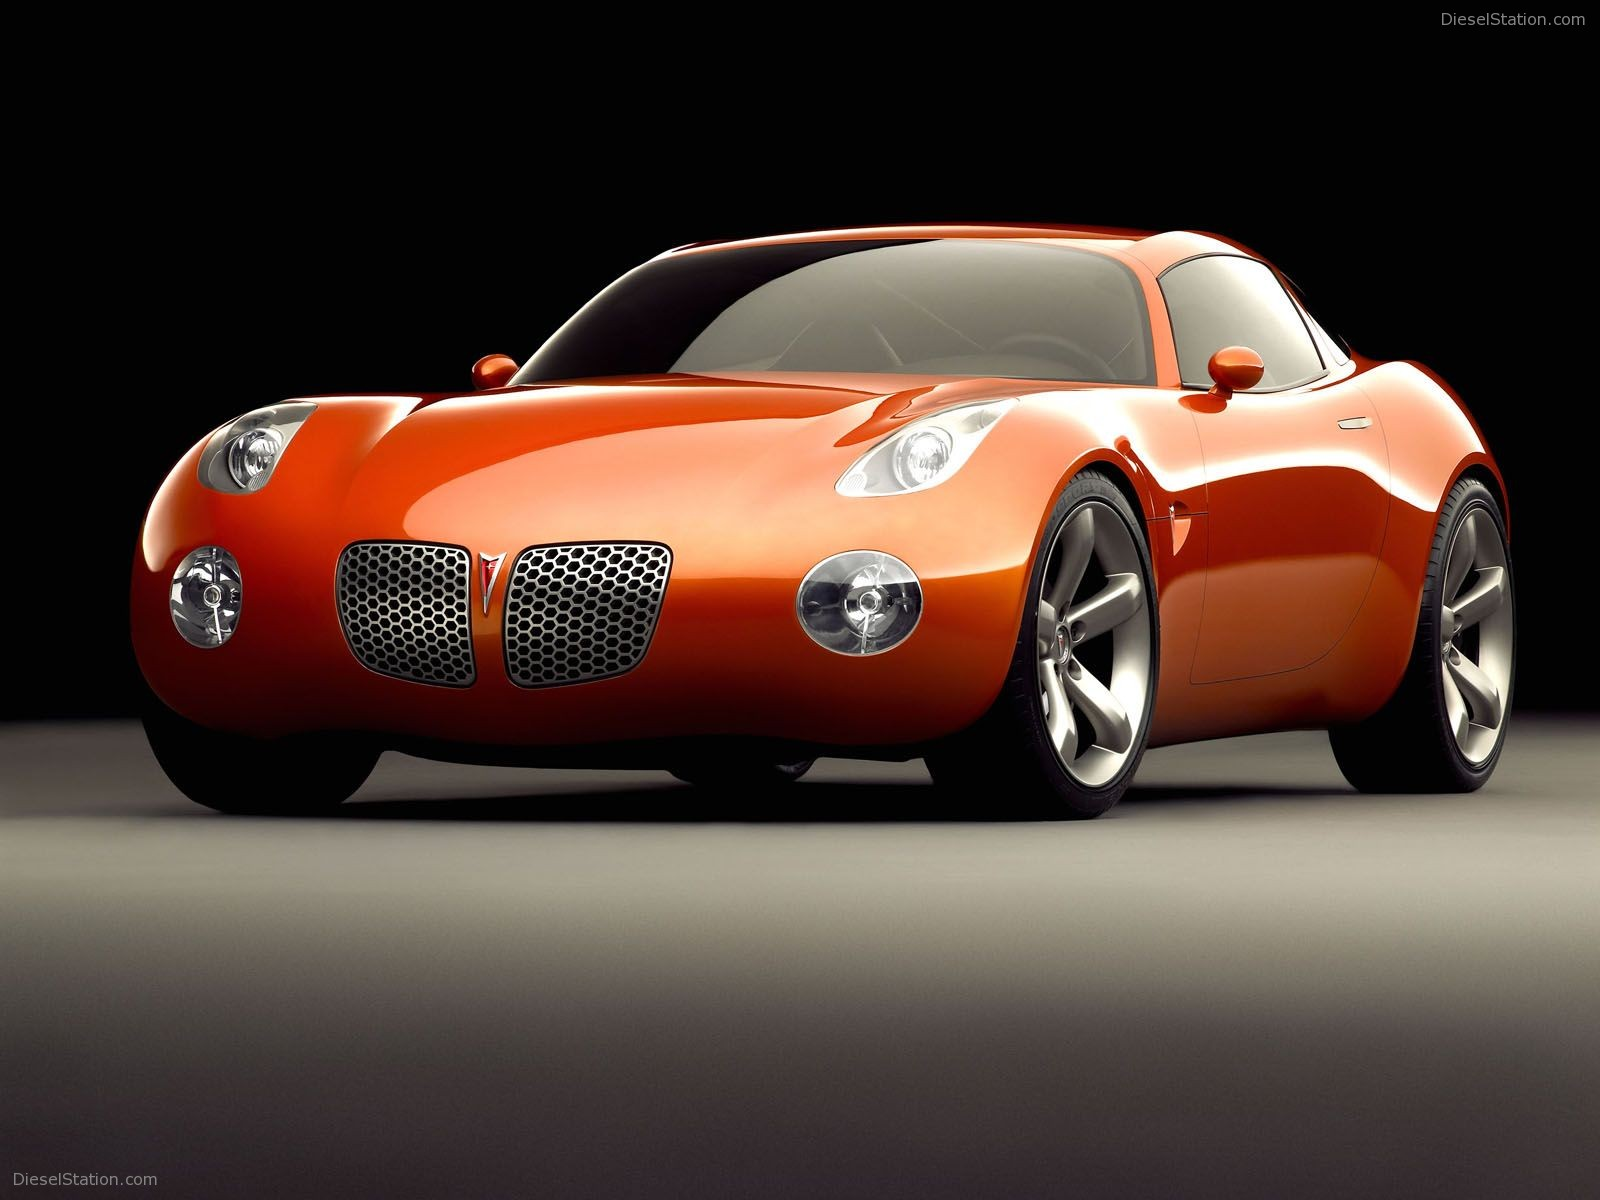 Pontiac Solstice - Car Wallpaper at Dieselstation